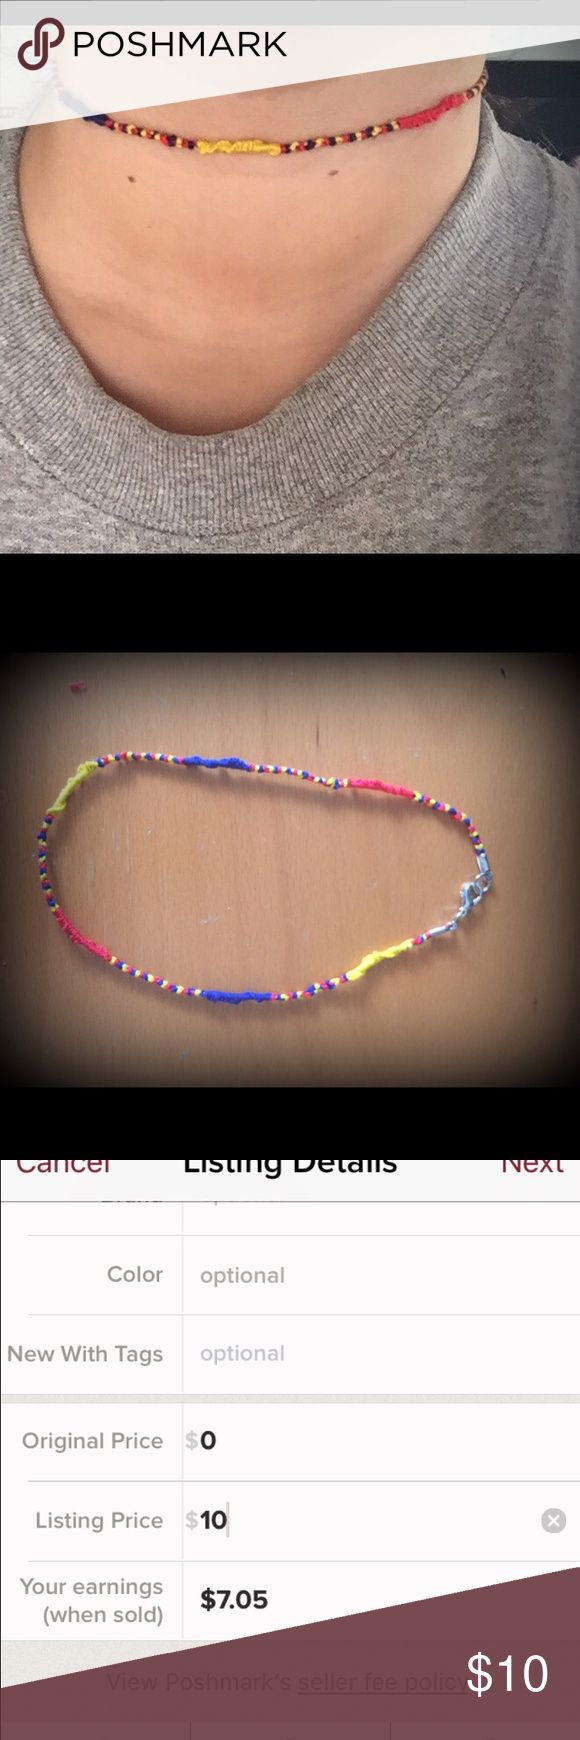 CHOKER I MADE: friendship necklace blue yellow red CHOKER I MADE: friendship necklace in blue yellow and red. If you have any questions let me know. I AM A FAST SHIPPER . Go check out my closet I have more CHOKERS in different colors and styles. Jewelry Necklaces